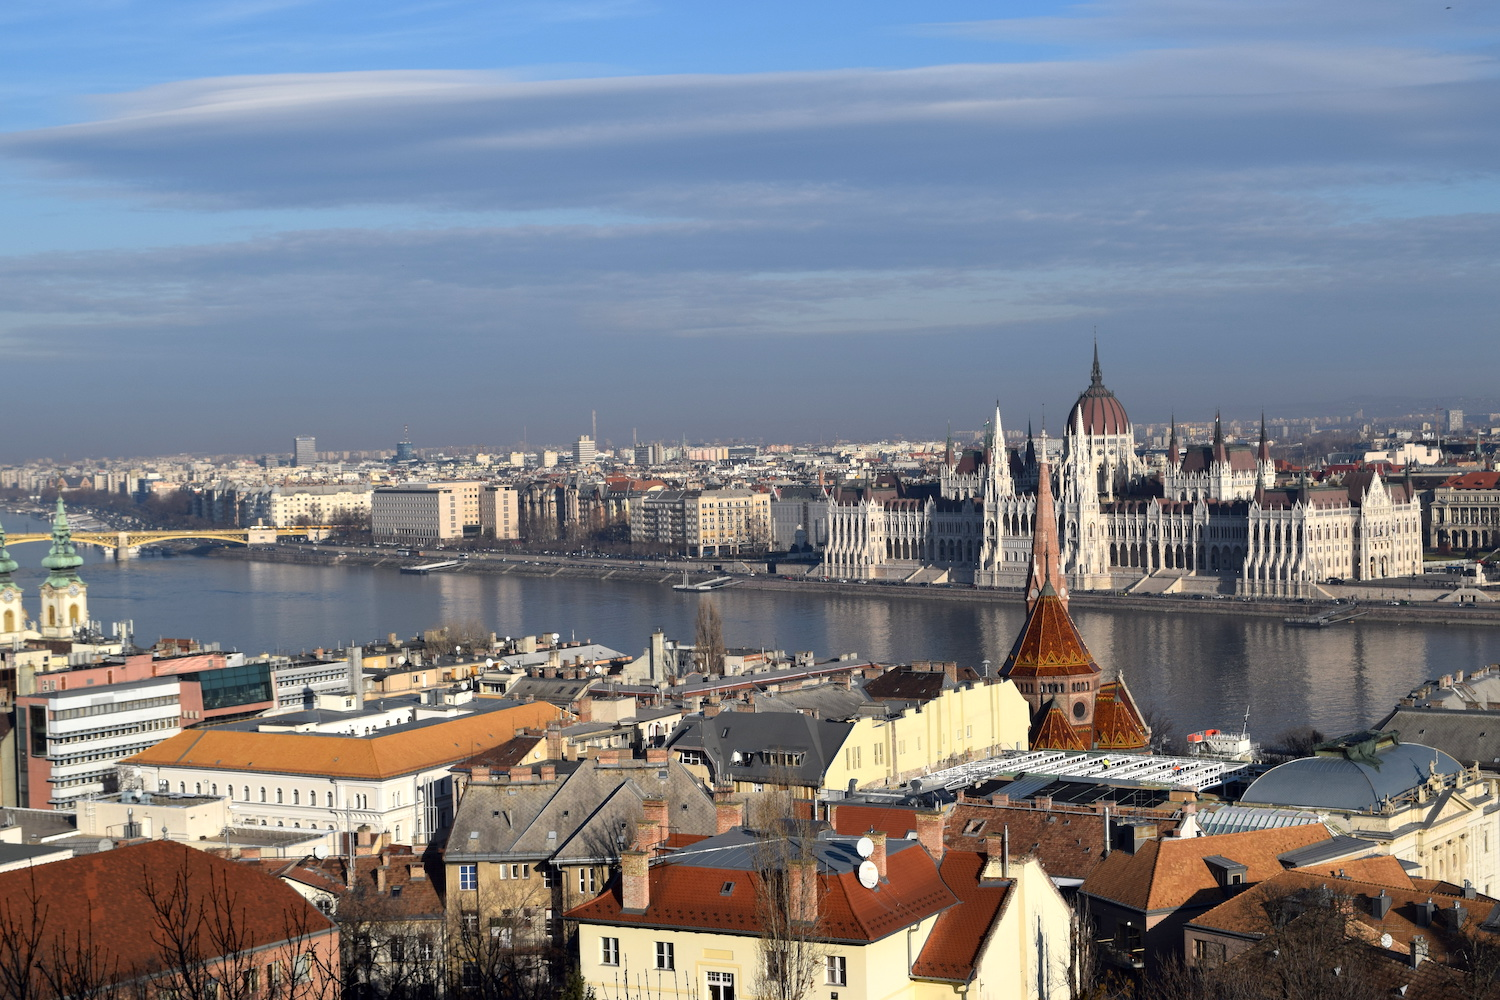 View of Hungary's parliament house from Fisherman's Bastion